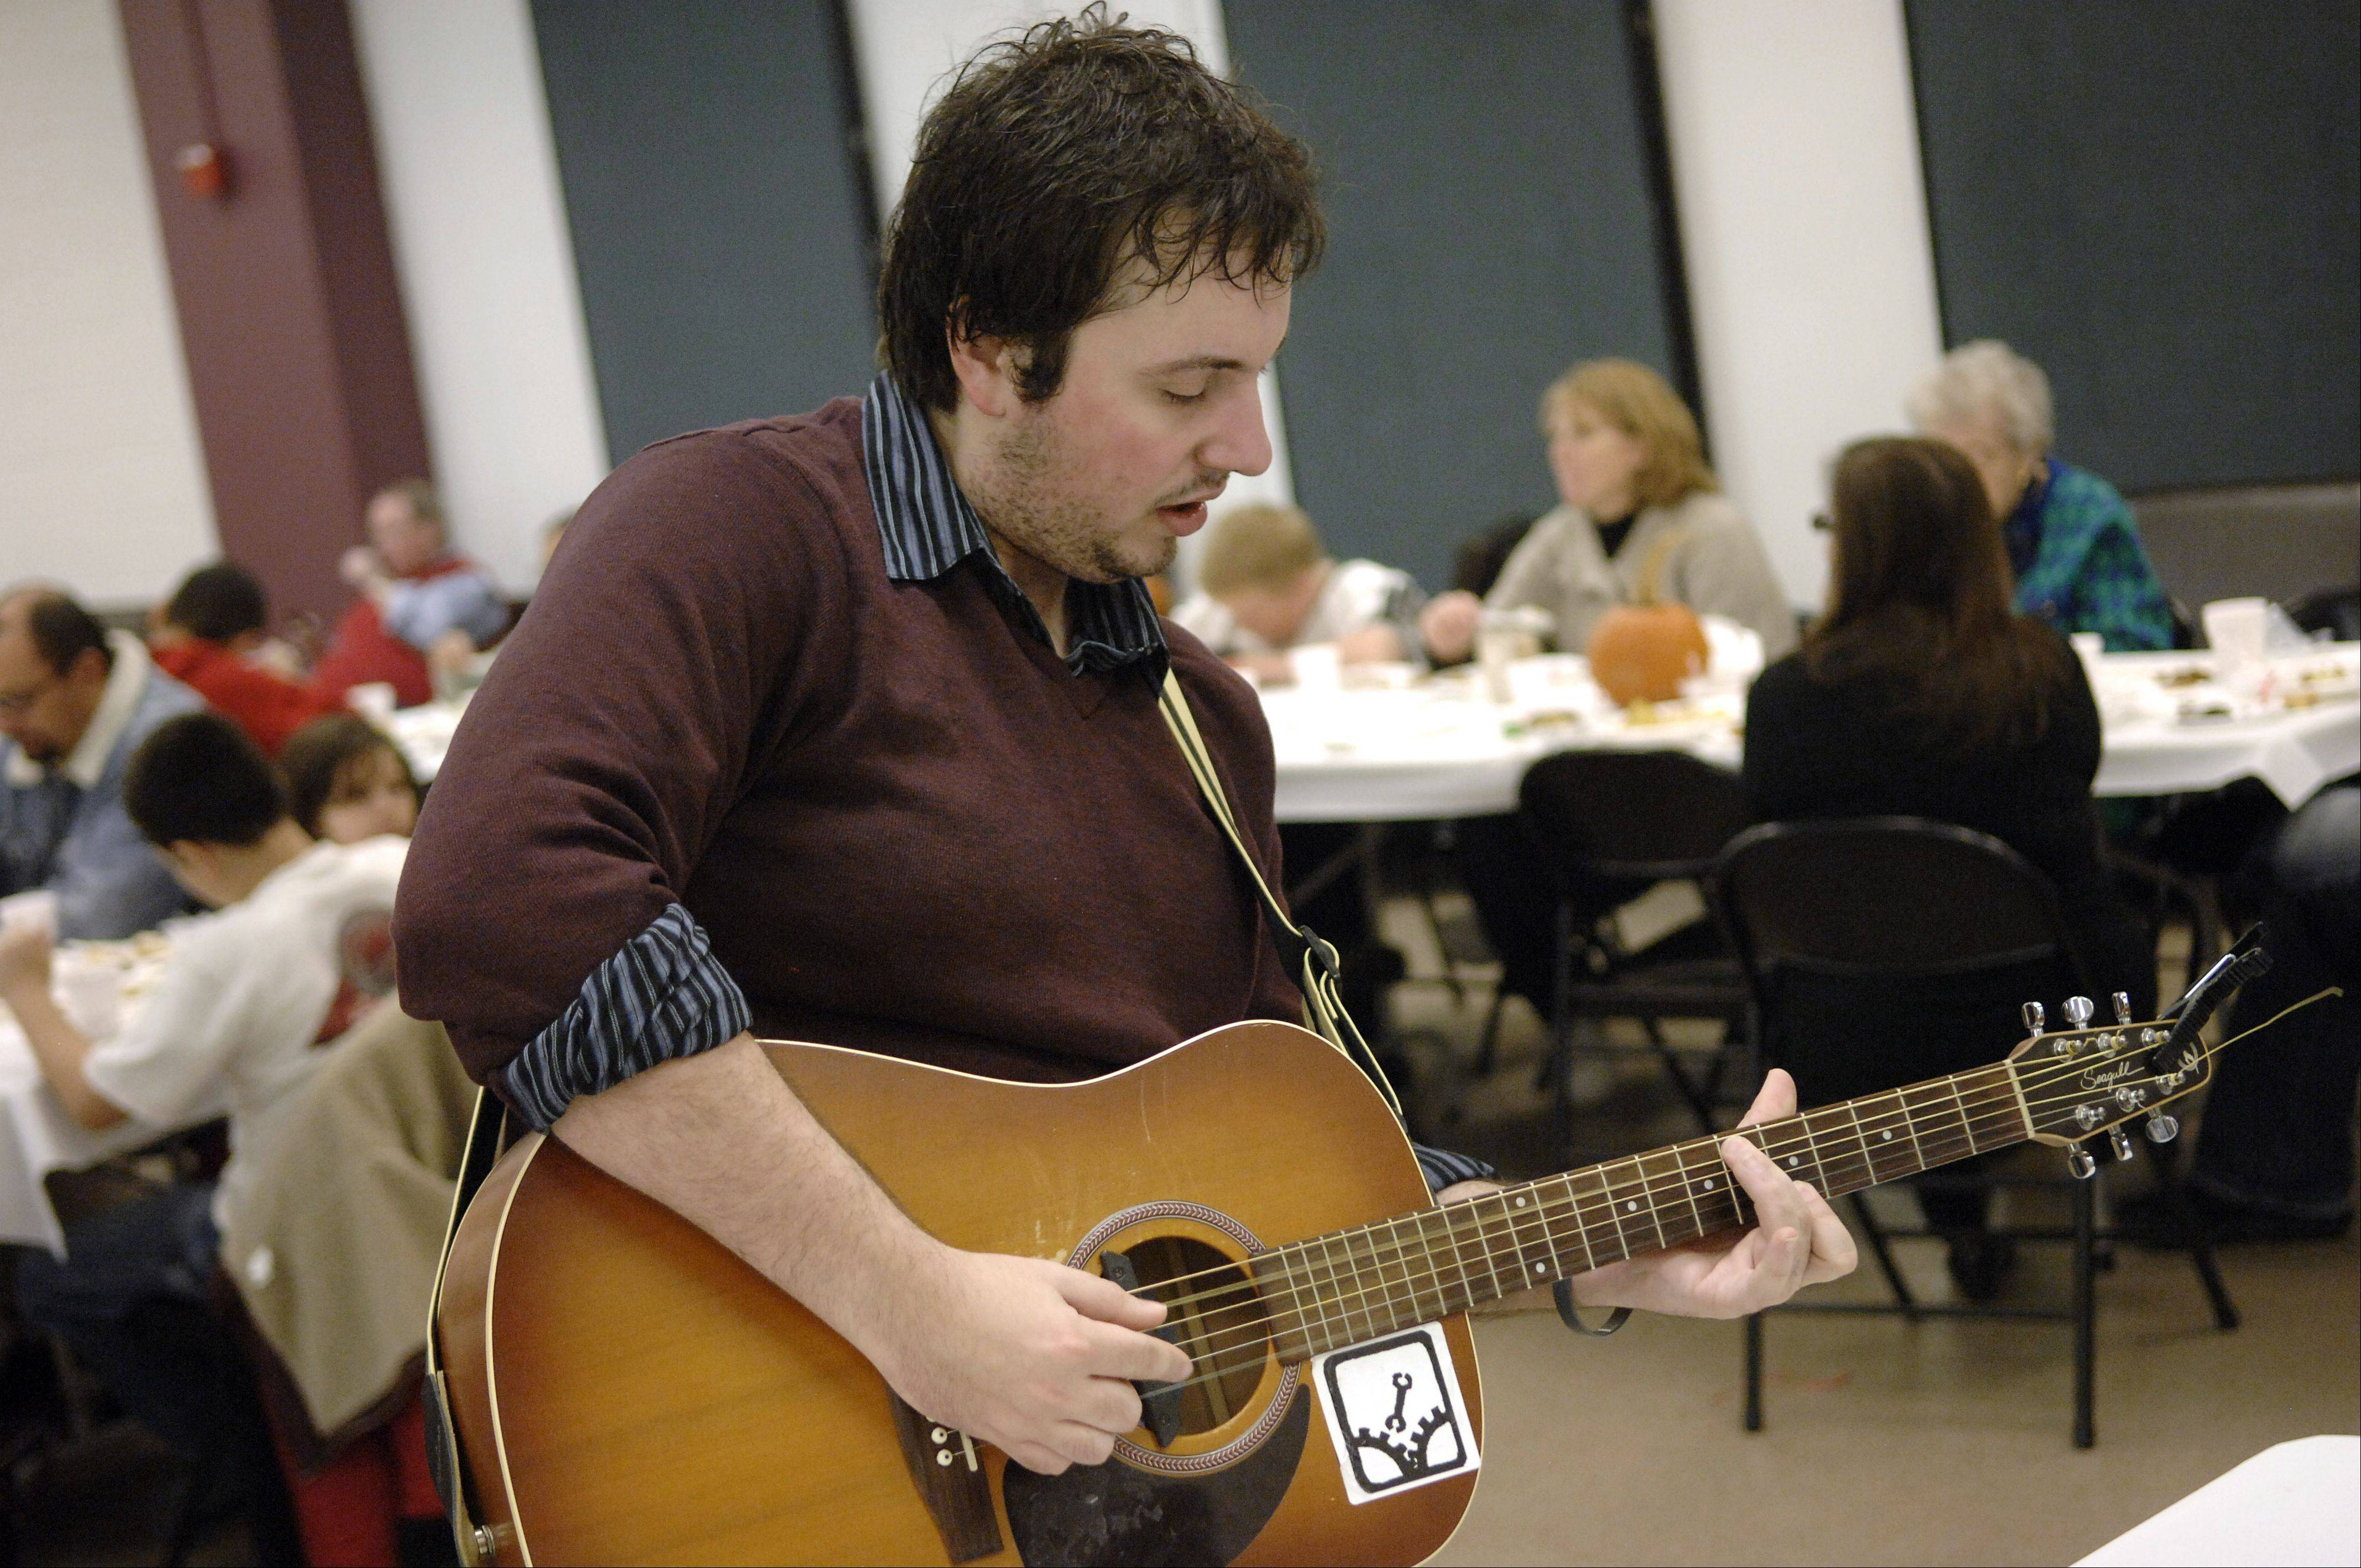 Jesse Greco of Elgin plays requests for diners at last year's Thanksgiving Community Dinner in Elgin.